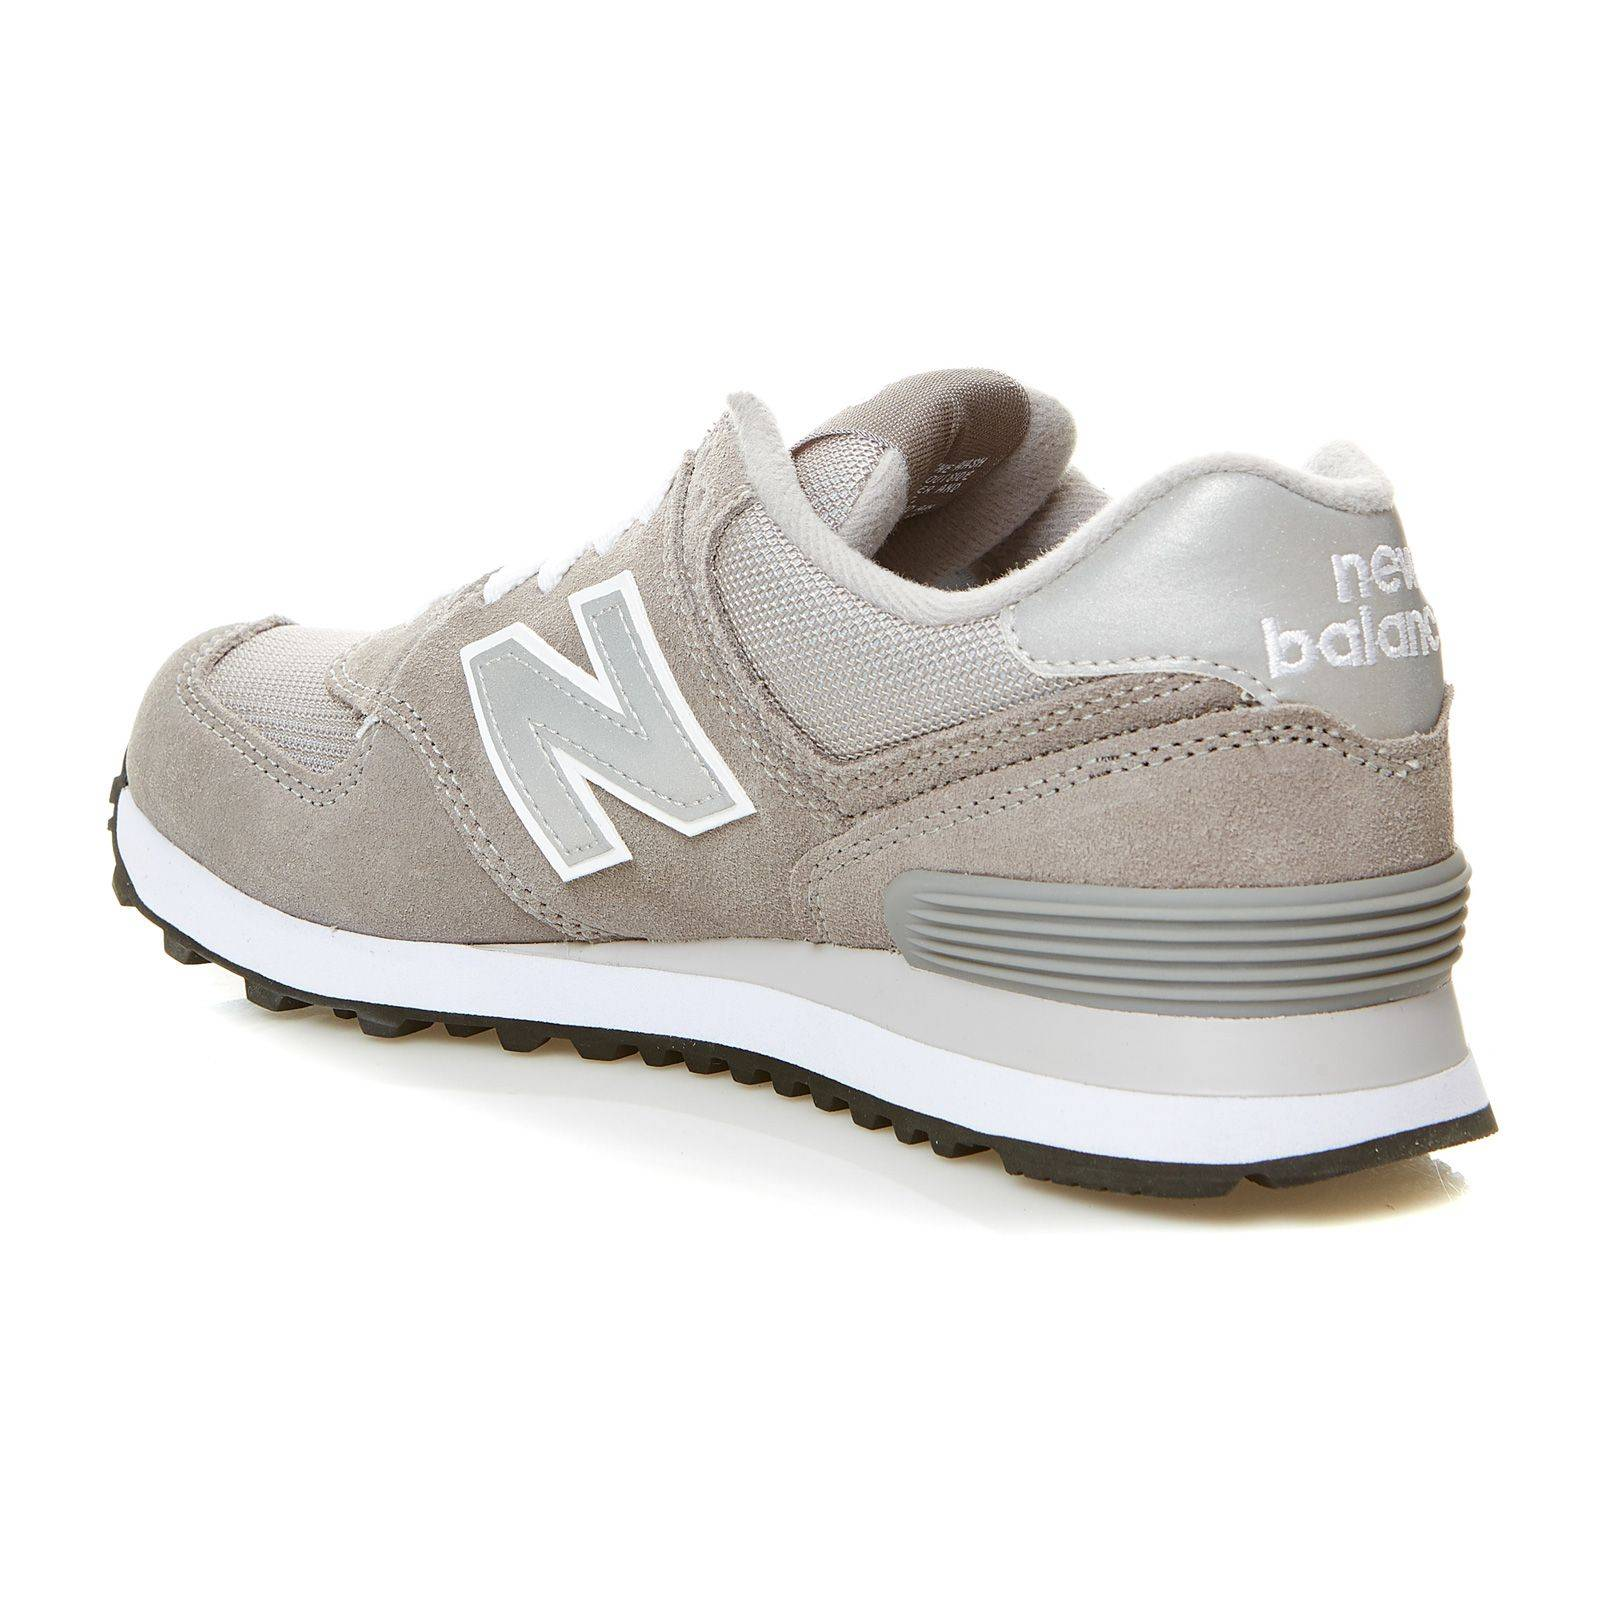 new balance m574 gs turnschuhe sneakers grau brandalley. Black Bedroom Furniture Sets. Home Design Ideas